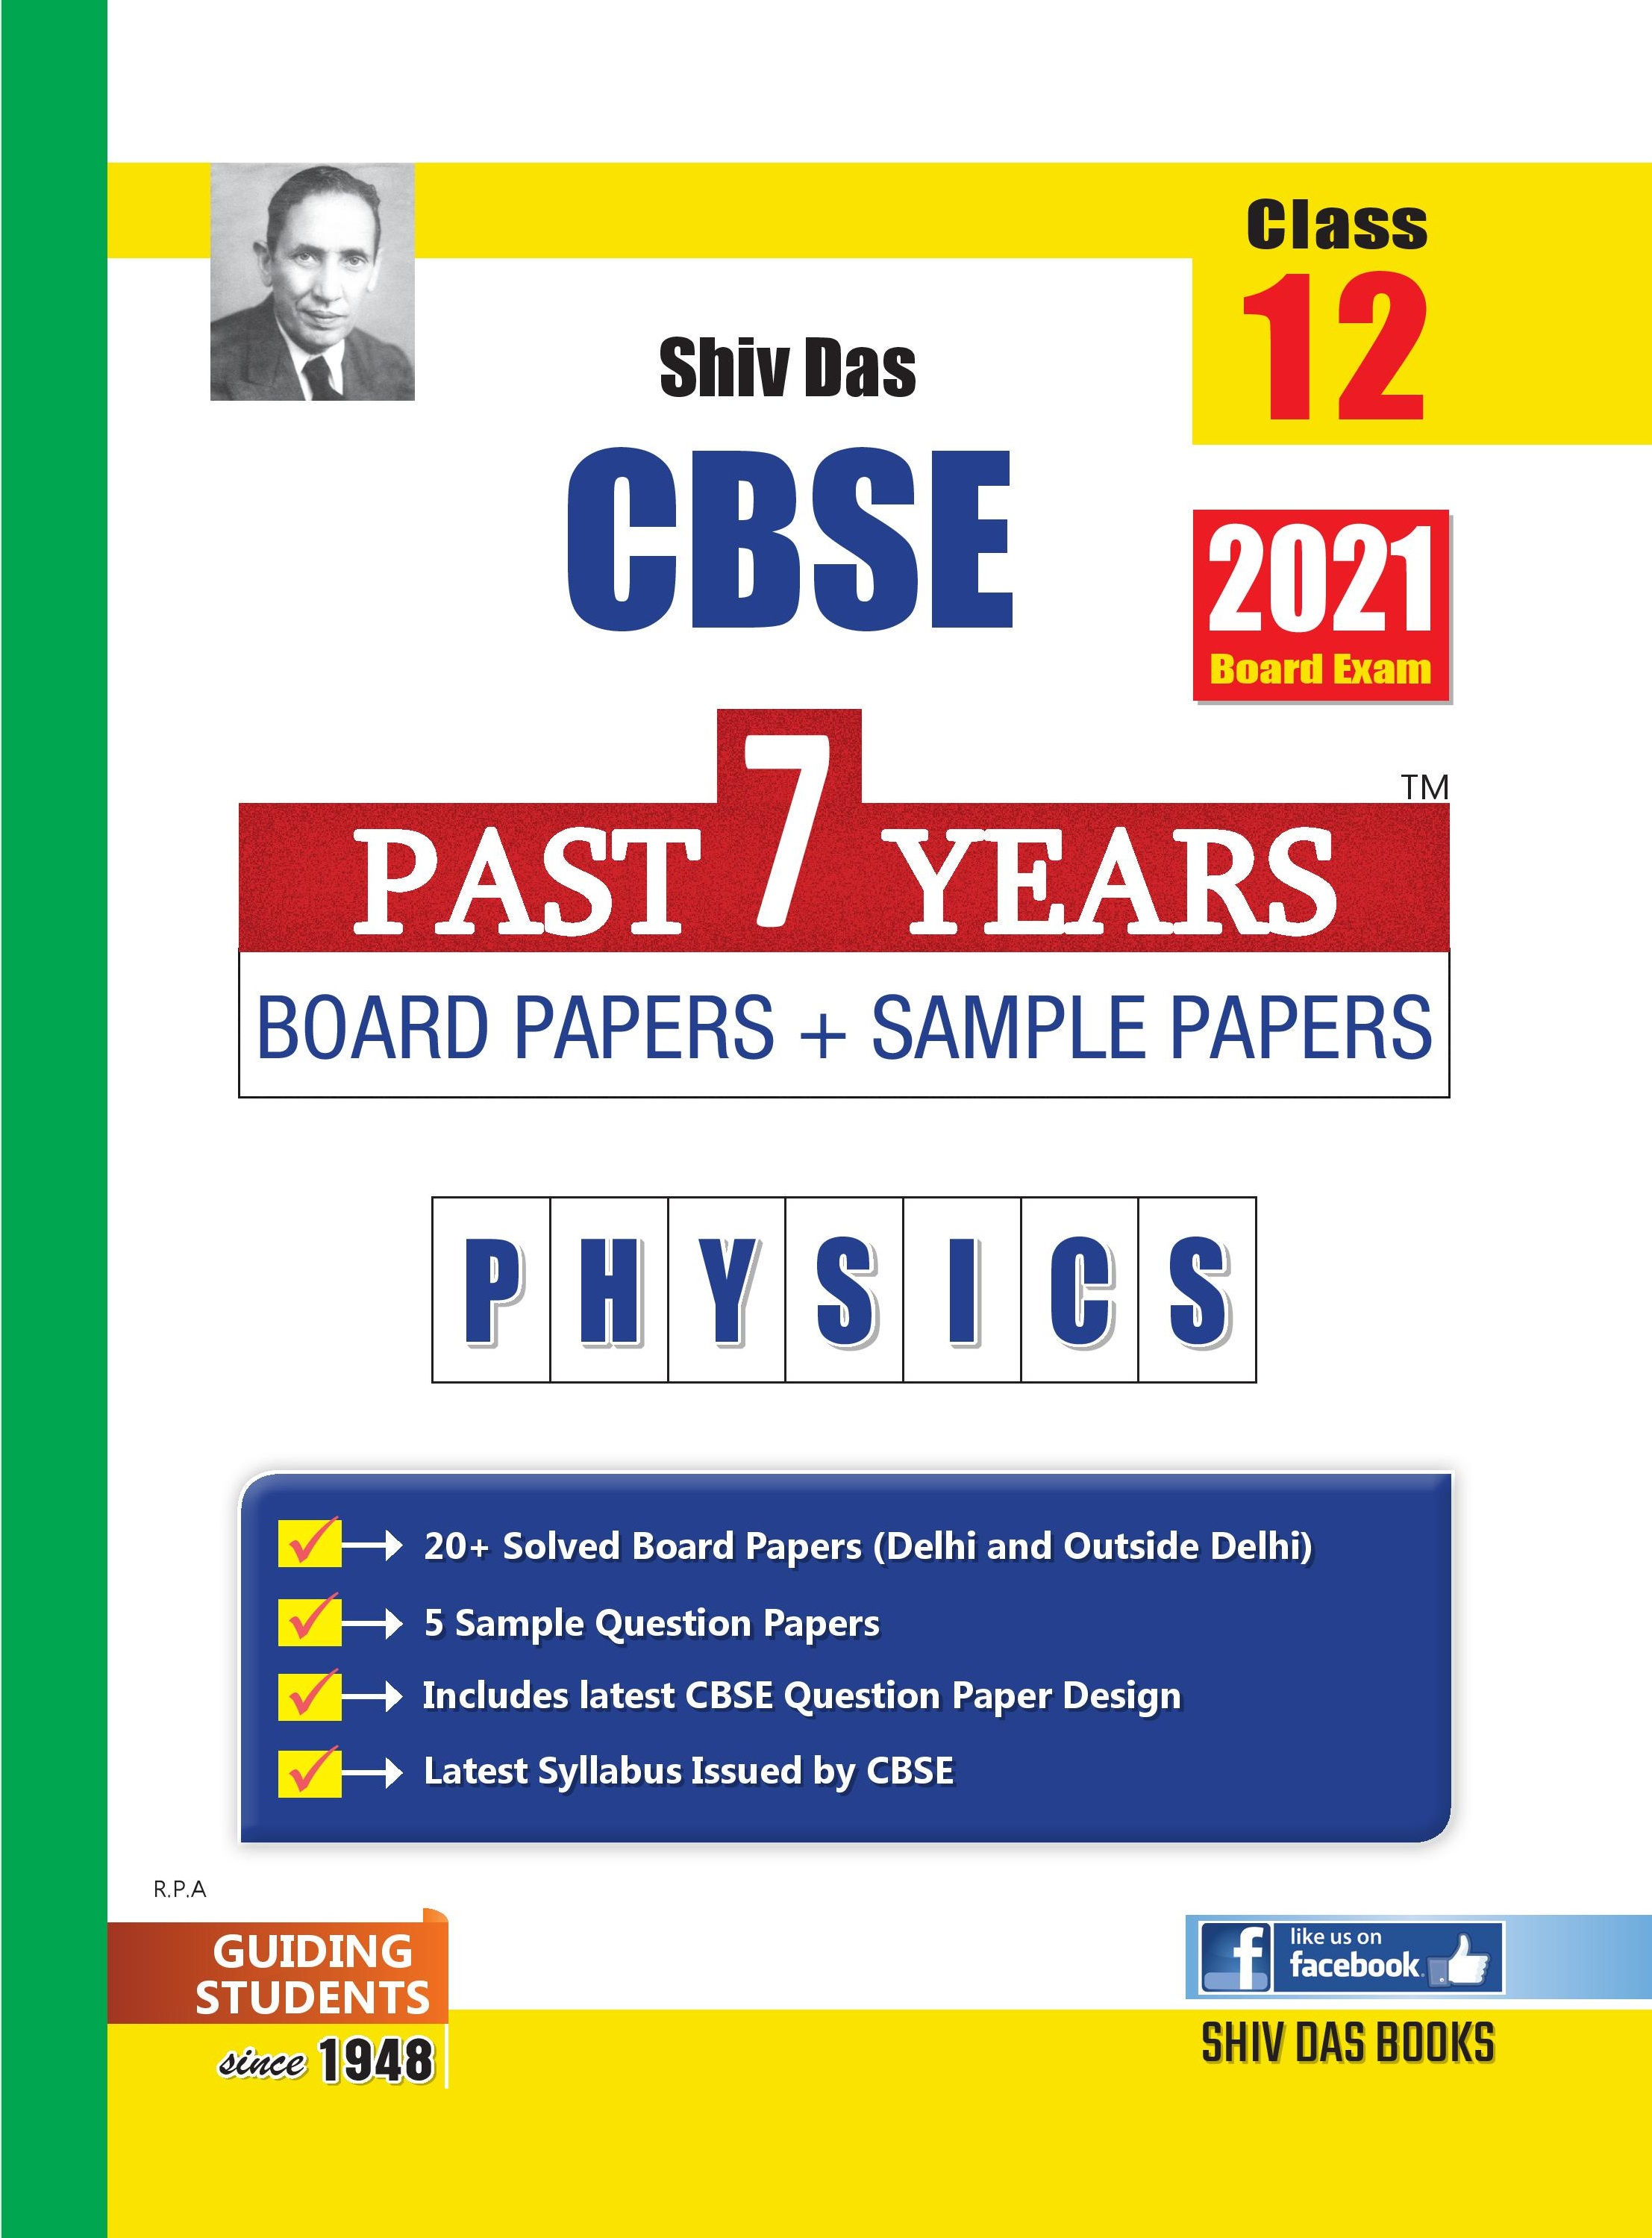 CBSE Past 7 Years Solved Board Papers and Sample Papers for Class 12 Physics By SHIVDAS (2021 Board Exam Edition)